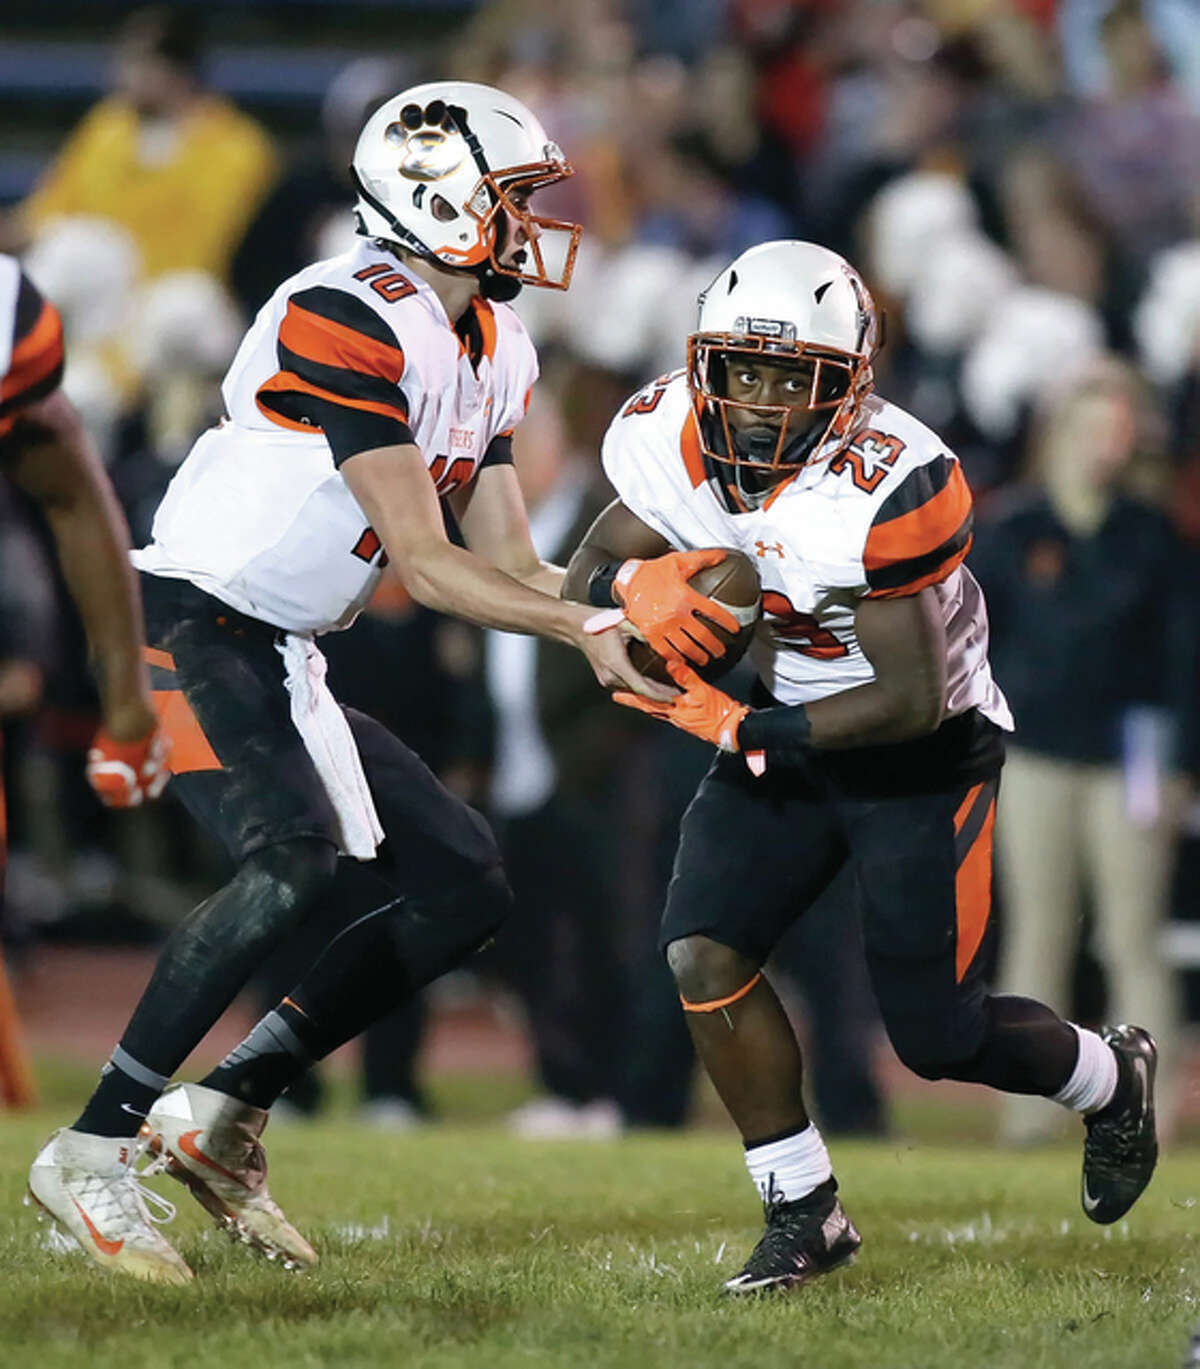 Edwardsville QB Brenden Dickmann (left) hands off to running back Dionte Rodgers on Friday night in Alton. Rodgers, a sophomore, finished with 211 rushing yards and three touchdowns from 16 carries.